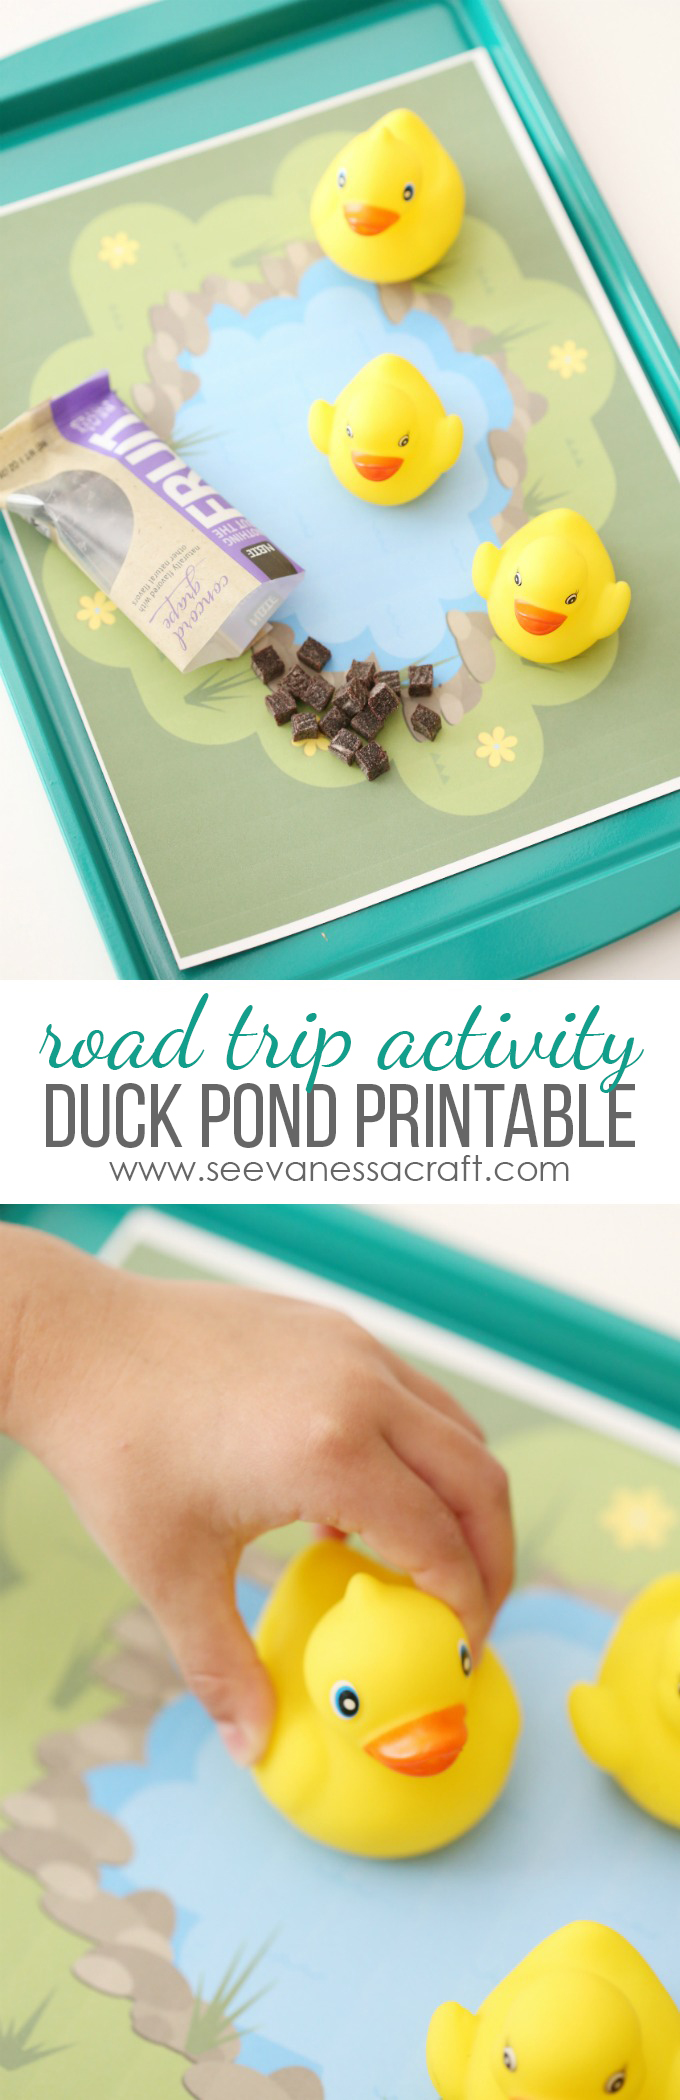 Duck Pond Printable and Road Trip Car Tray